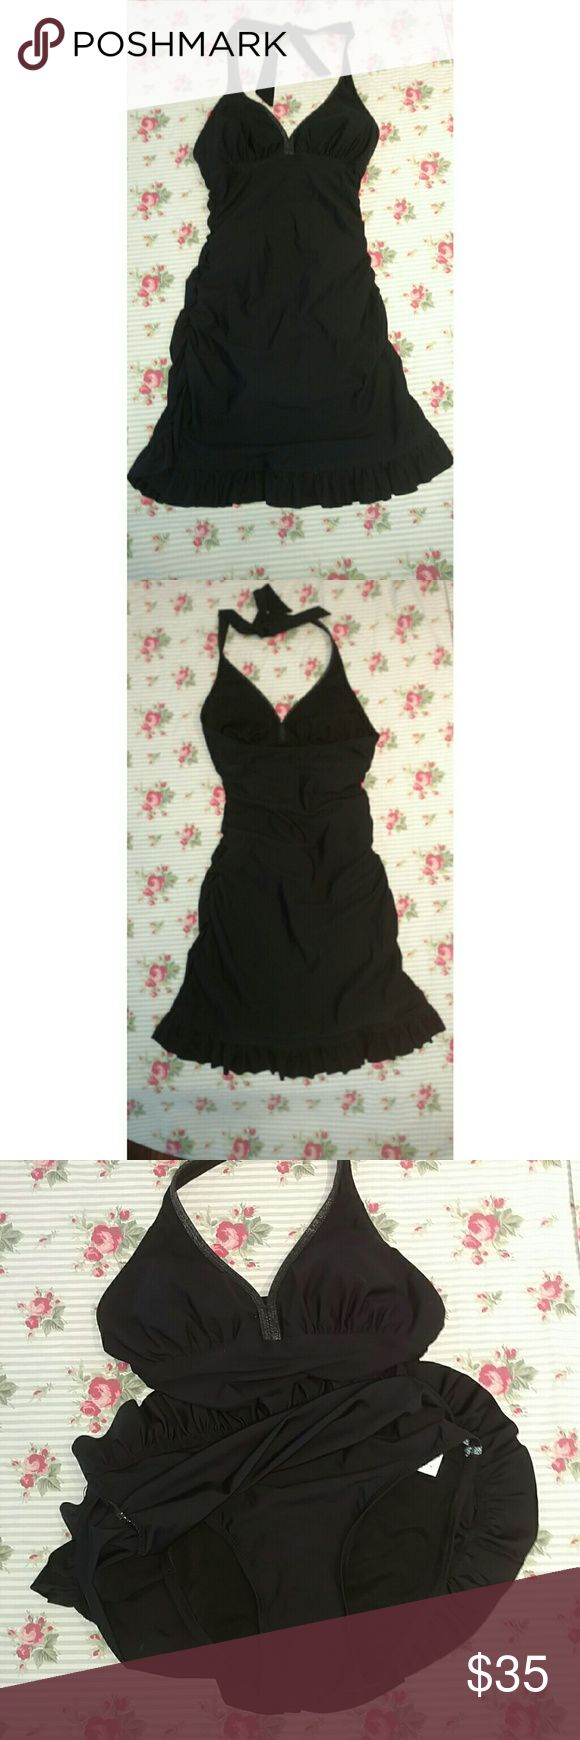 New Assets By Spanx Retro Halter Black Swim Dress New Assets By Spanx Retro Halter Black Swim Dress Sz S. New without tags. Super cute! ASSETS by Sara Blakely Swim One Pieces